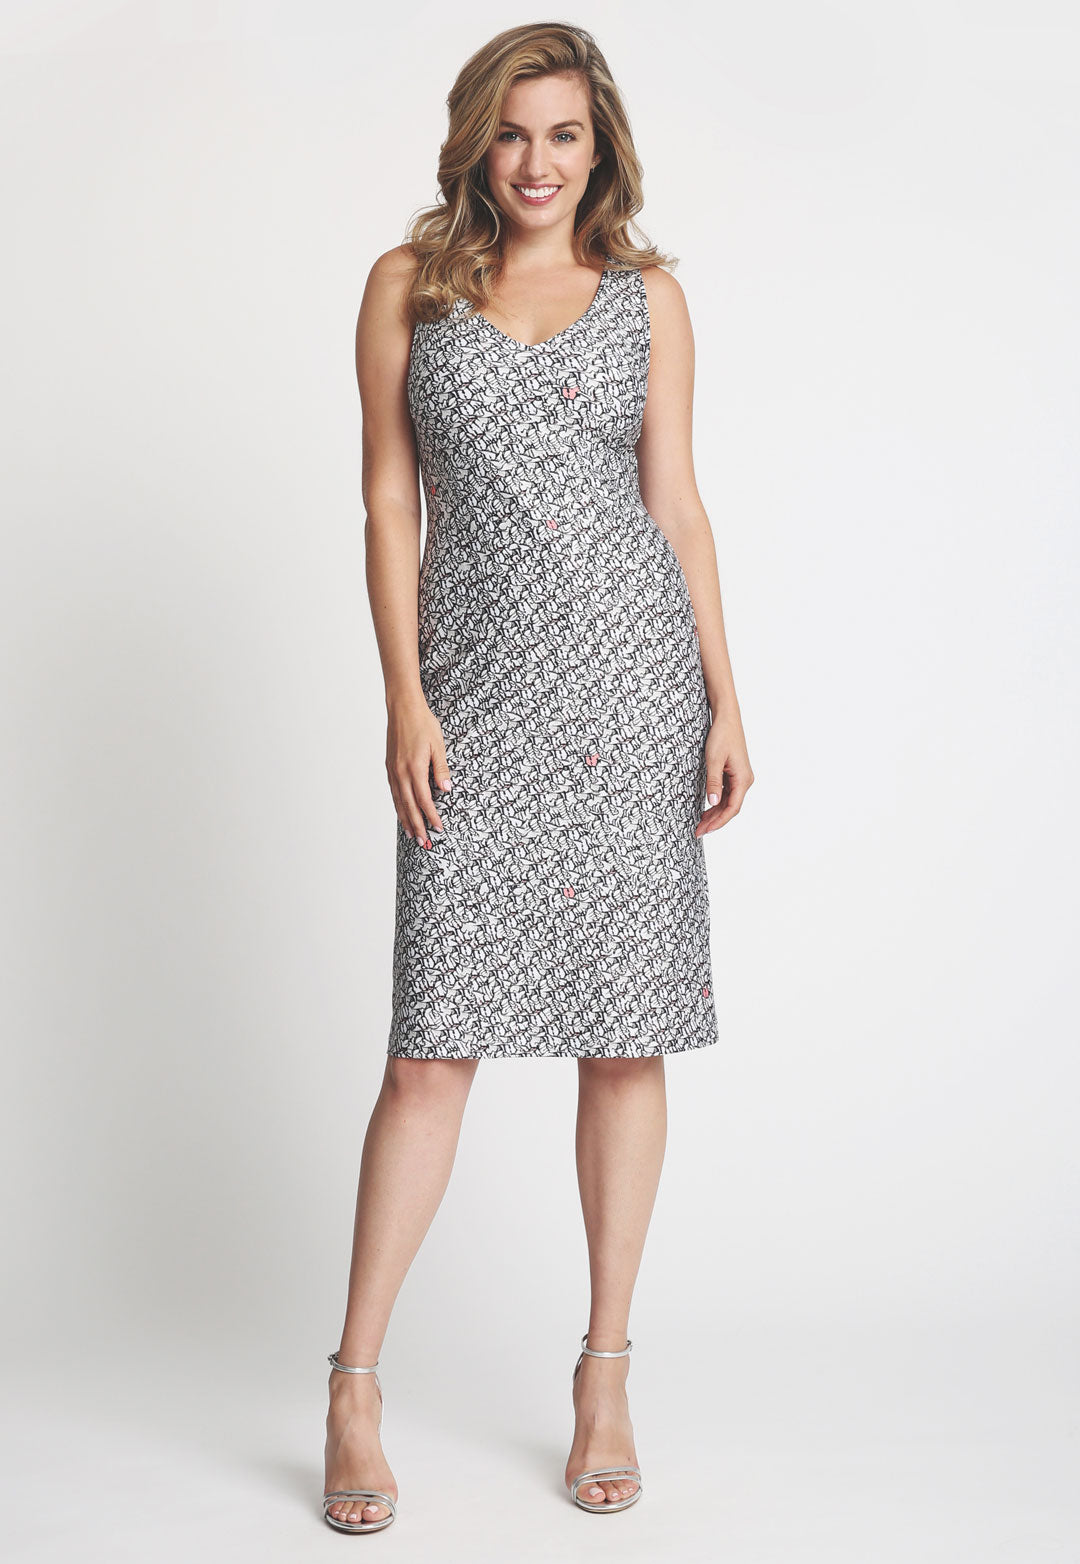 Lavinia Short Dress in Calathea front view